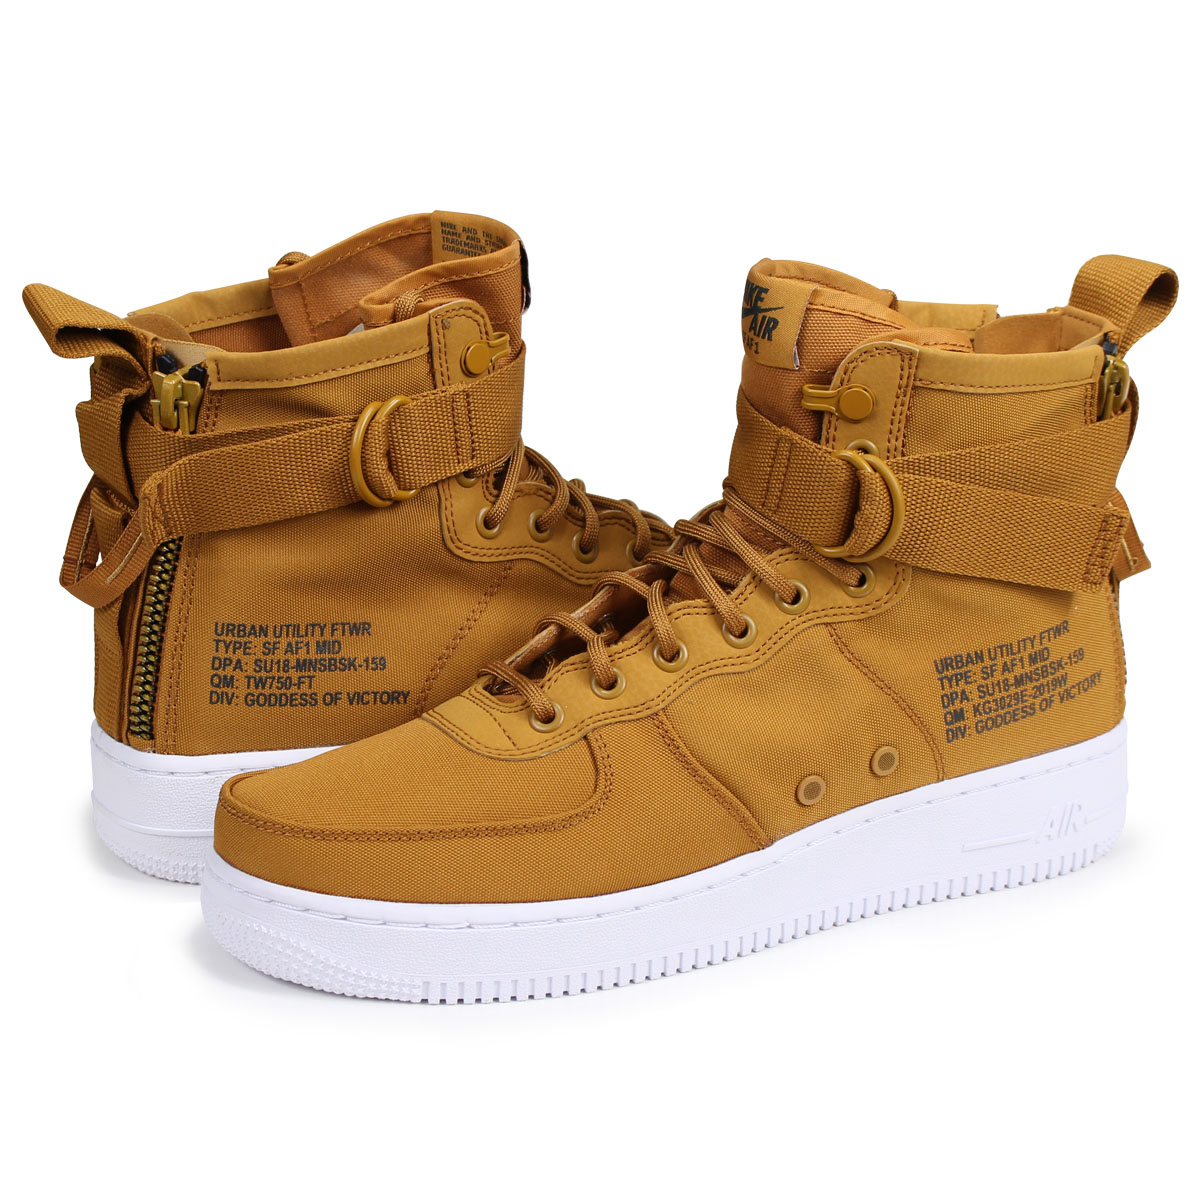 acheter populaire b034f 3384d NIKE SPECIAL FIELD AIR FORCE 1 MID Nike air force 1 sneakers men special  field 917,753-700 SF AF1 brown [load planned Shinnyu load in reservation ...